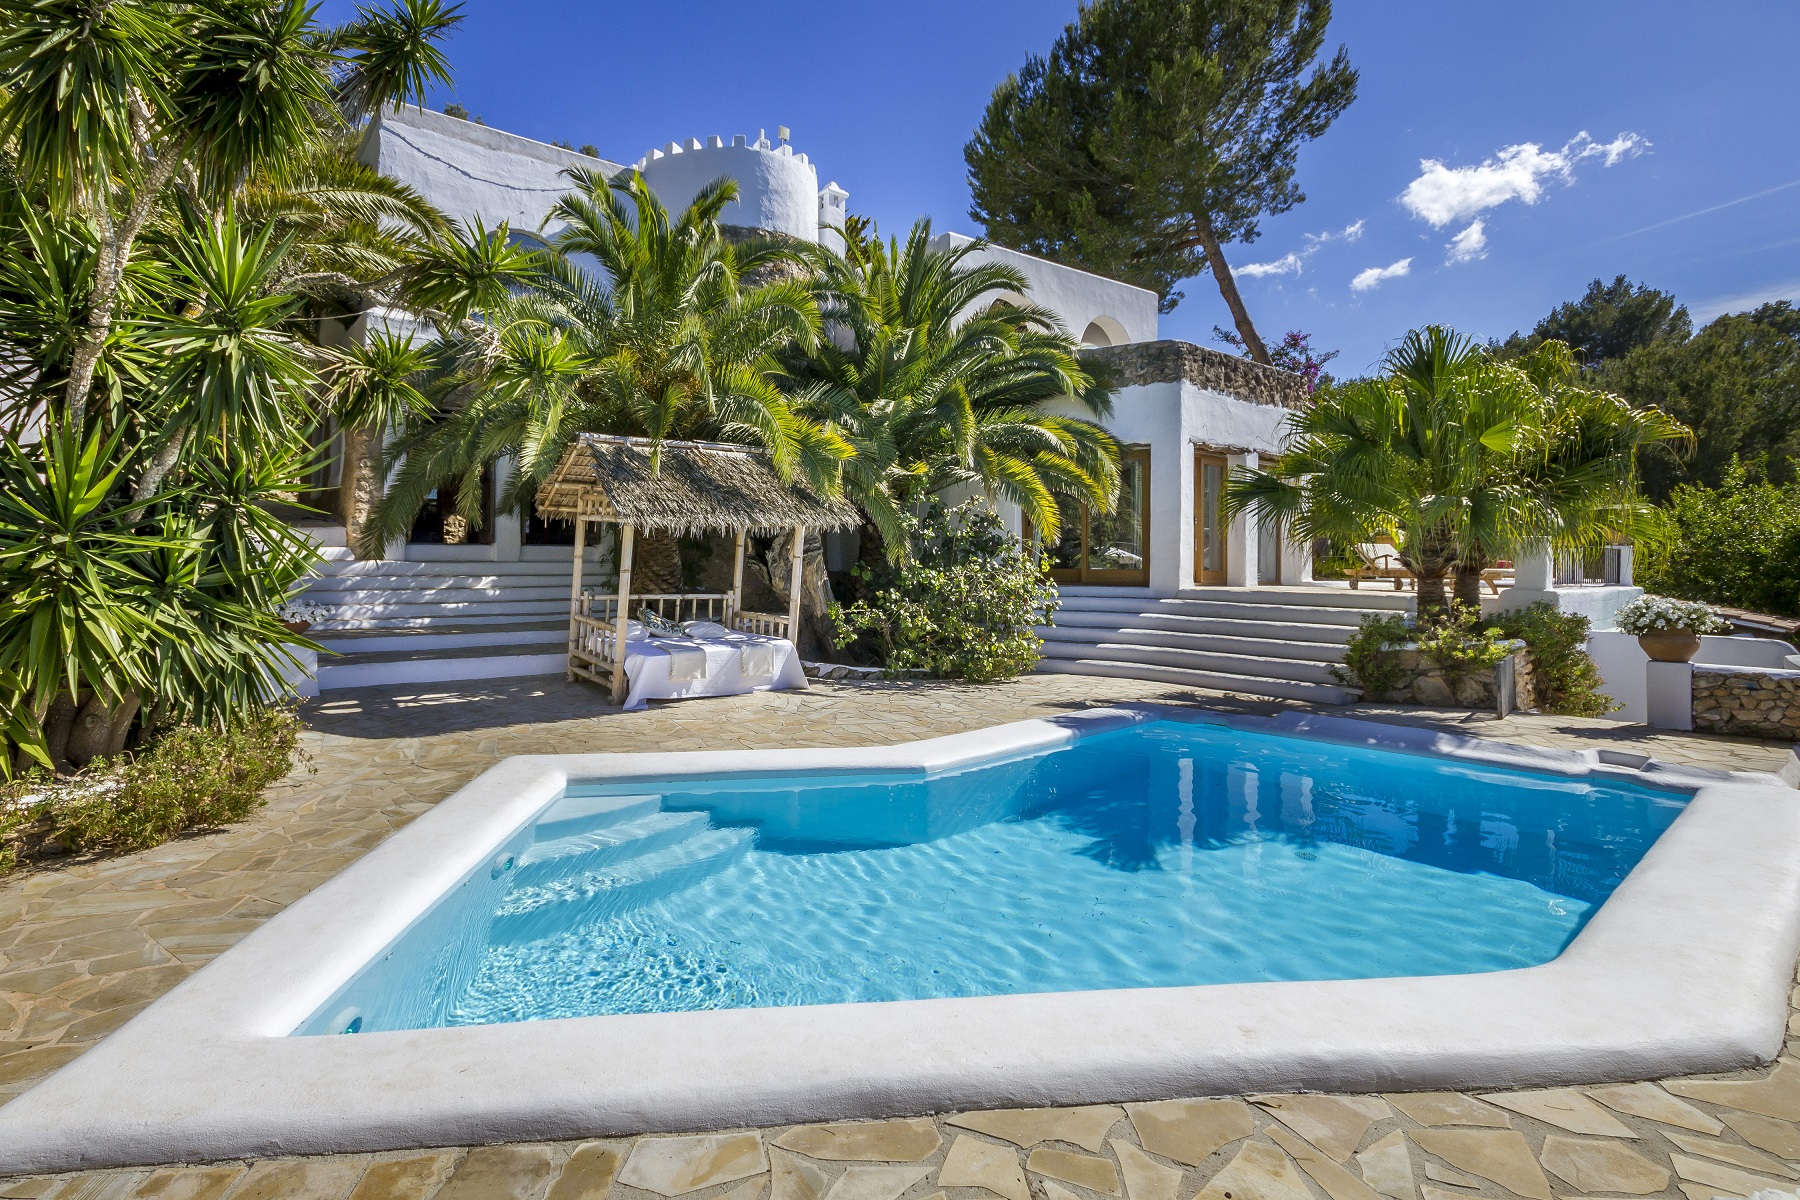 Villa Fantasy - 8 Bedroom Property for sale in Ibiza - white-island.com